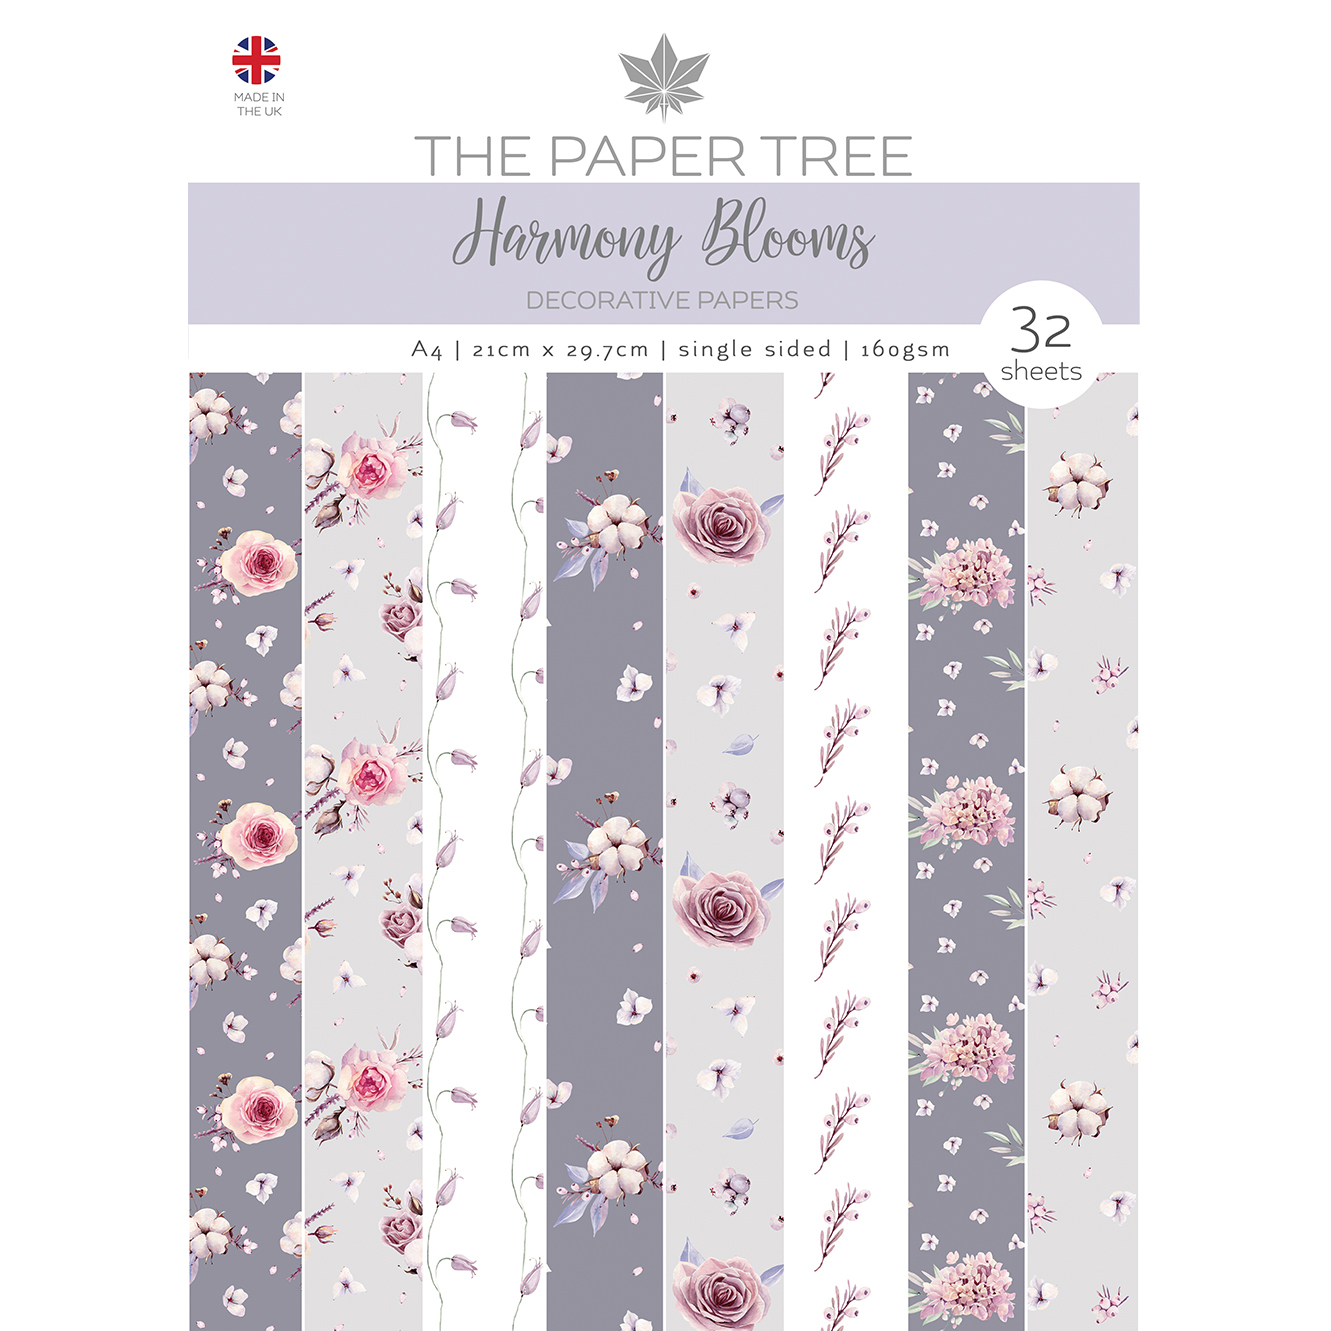 The Paper Tree Harmony Blooms A4 Decorative Papers